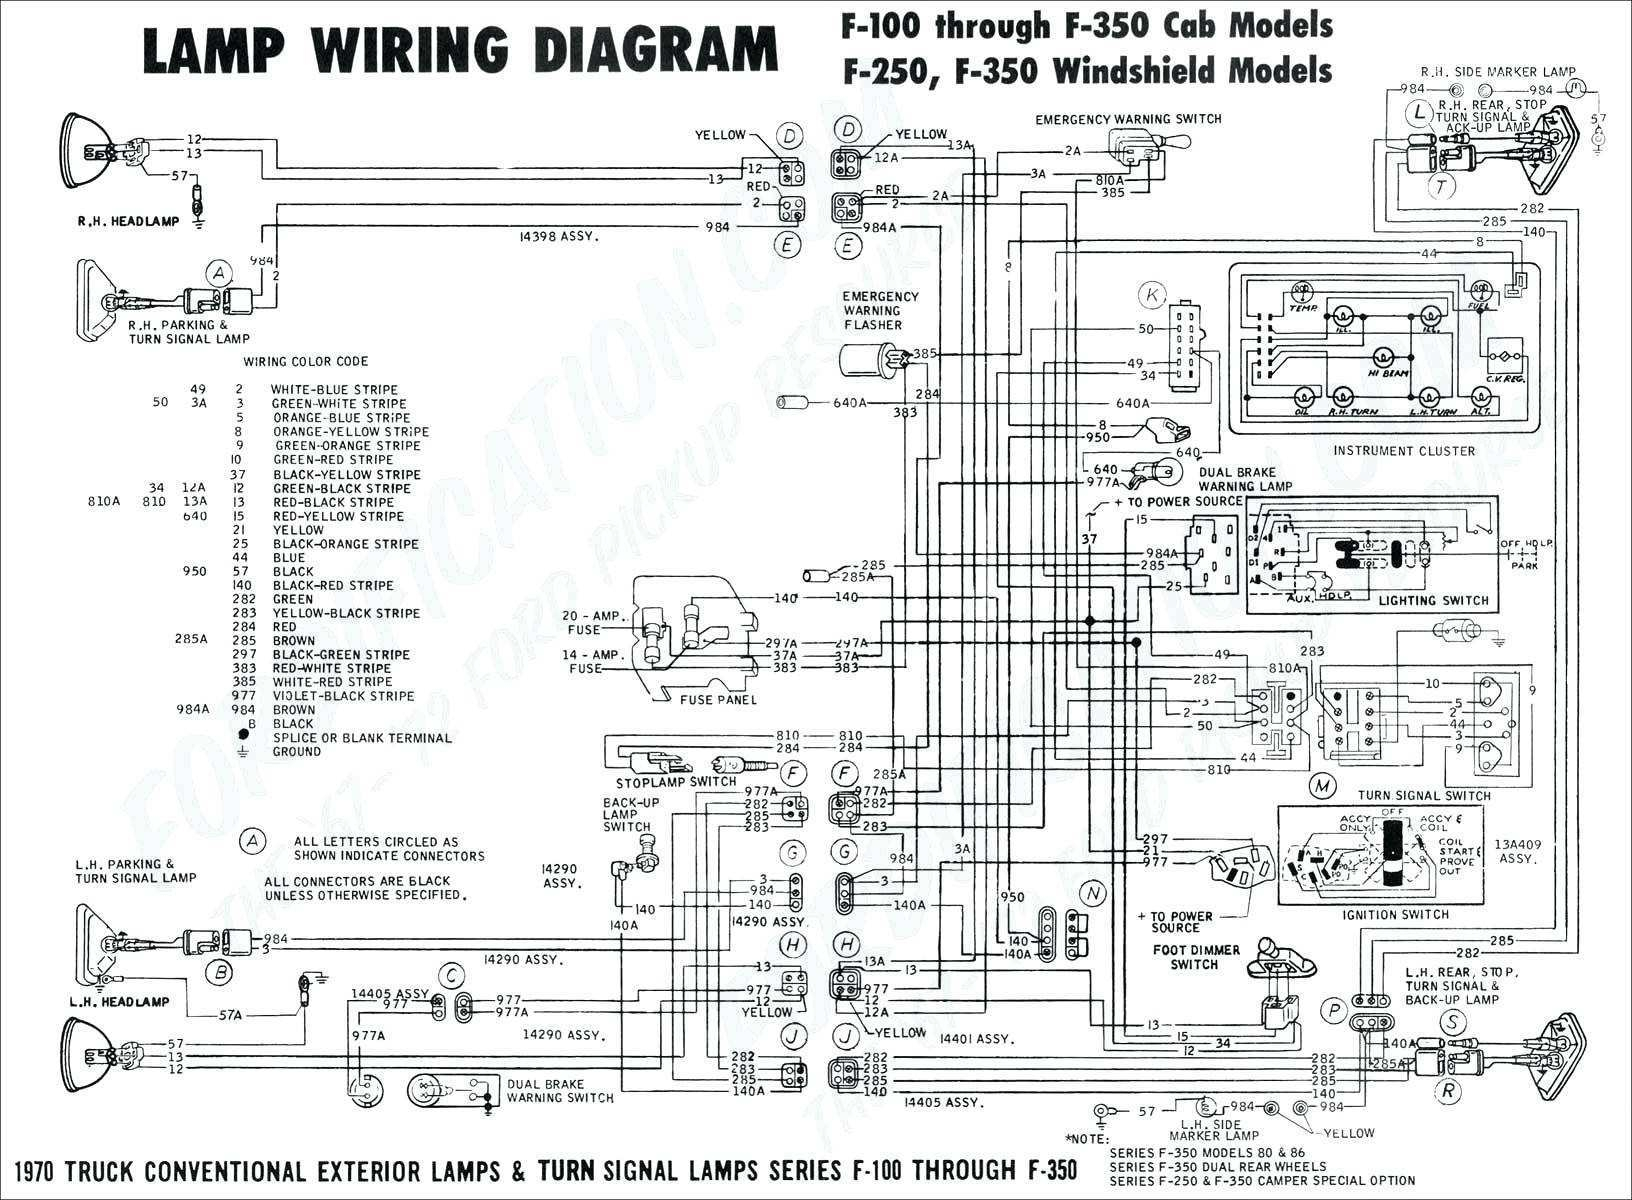 Diagram Lathe Wiring Td 1236 - Wiring Diagram Structure